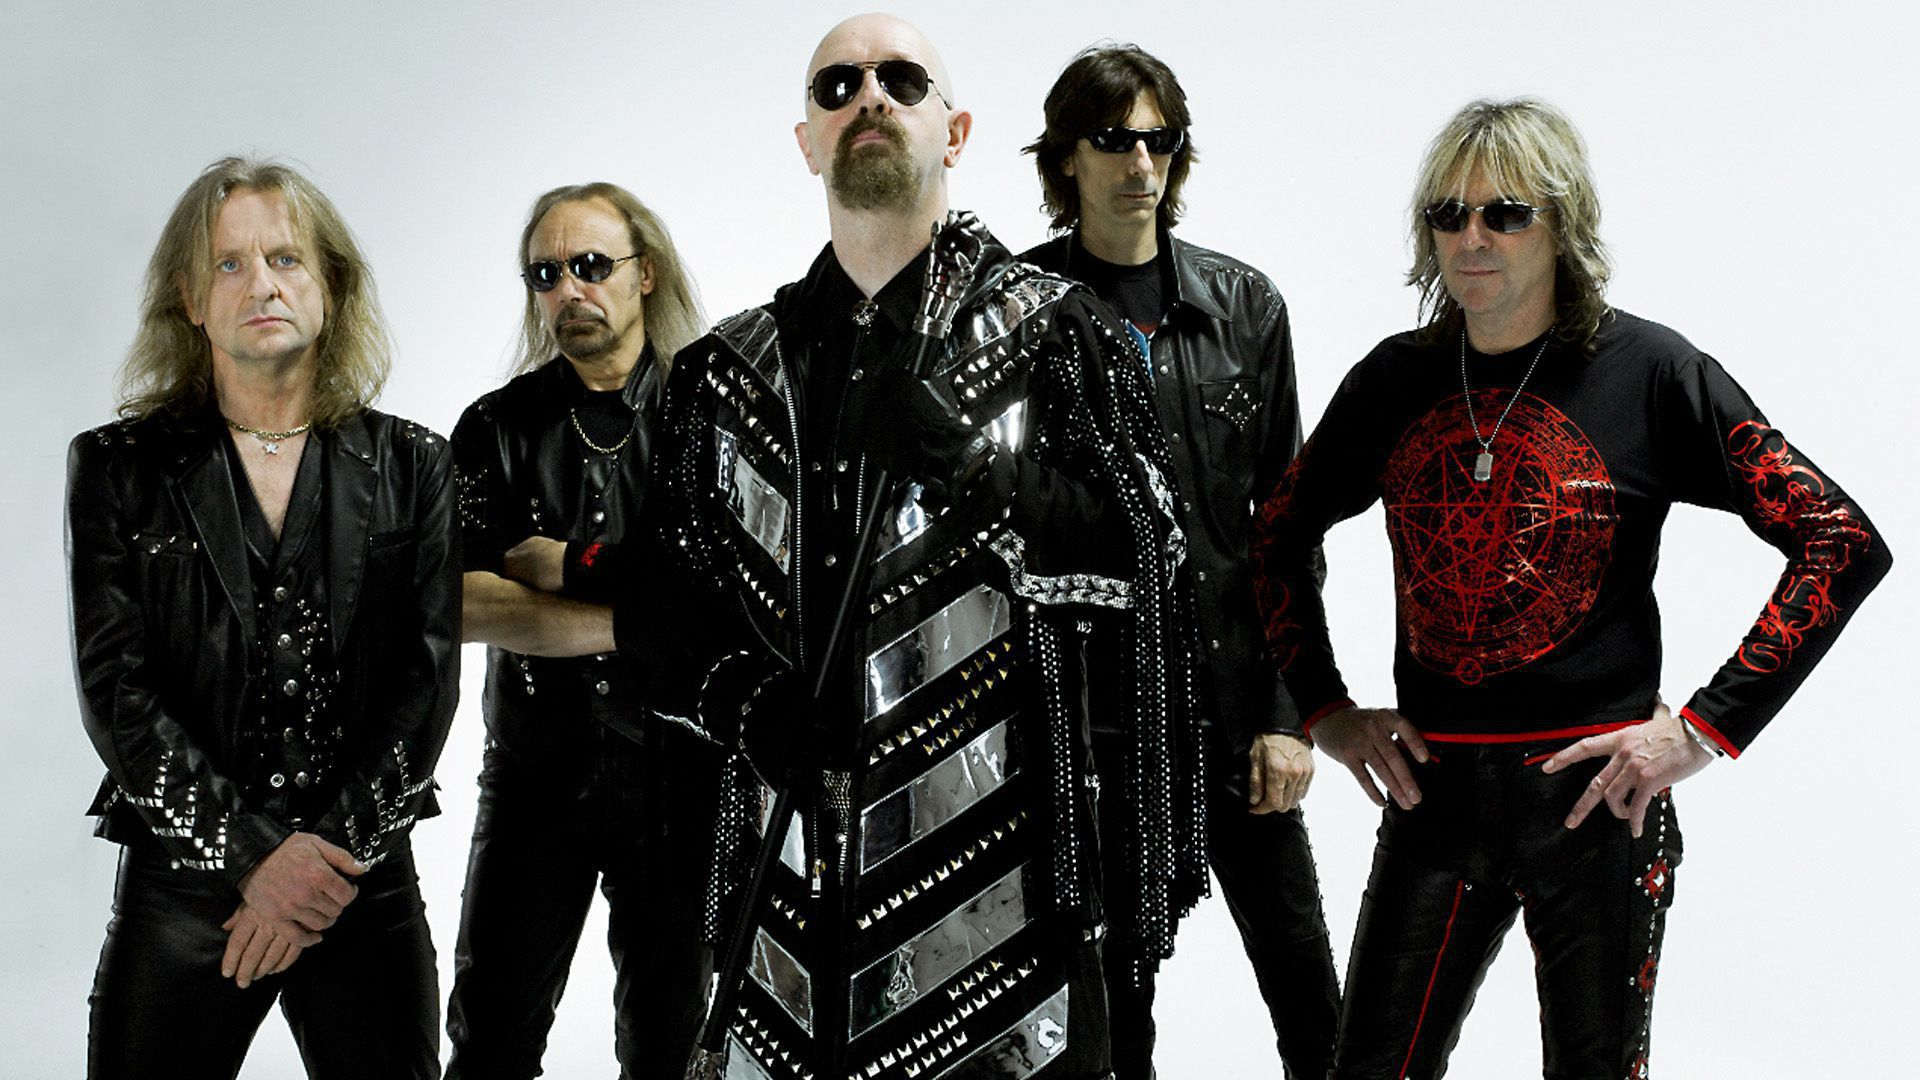 Judas Priest Wallpapers Backgrounds